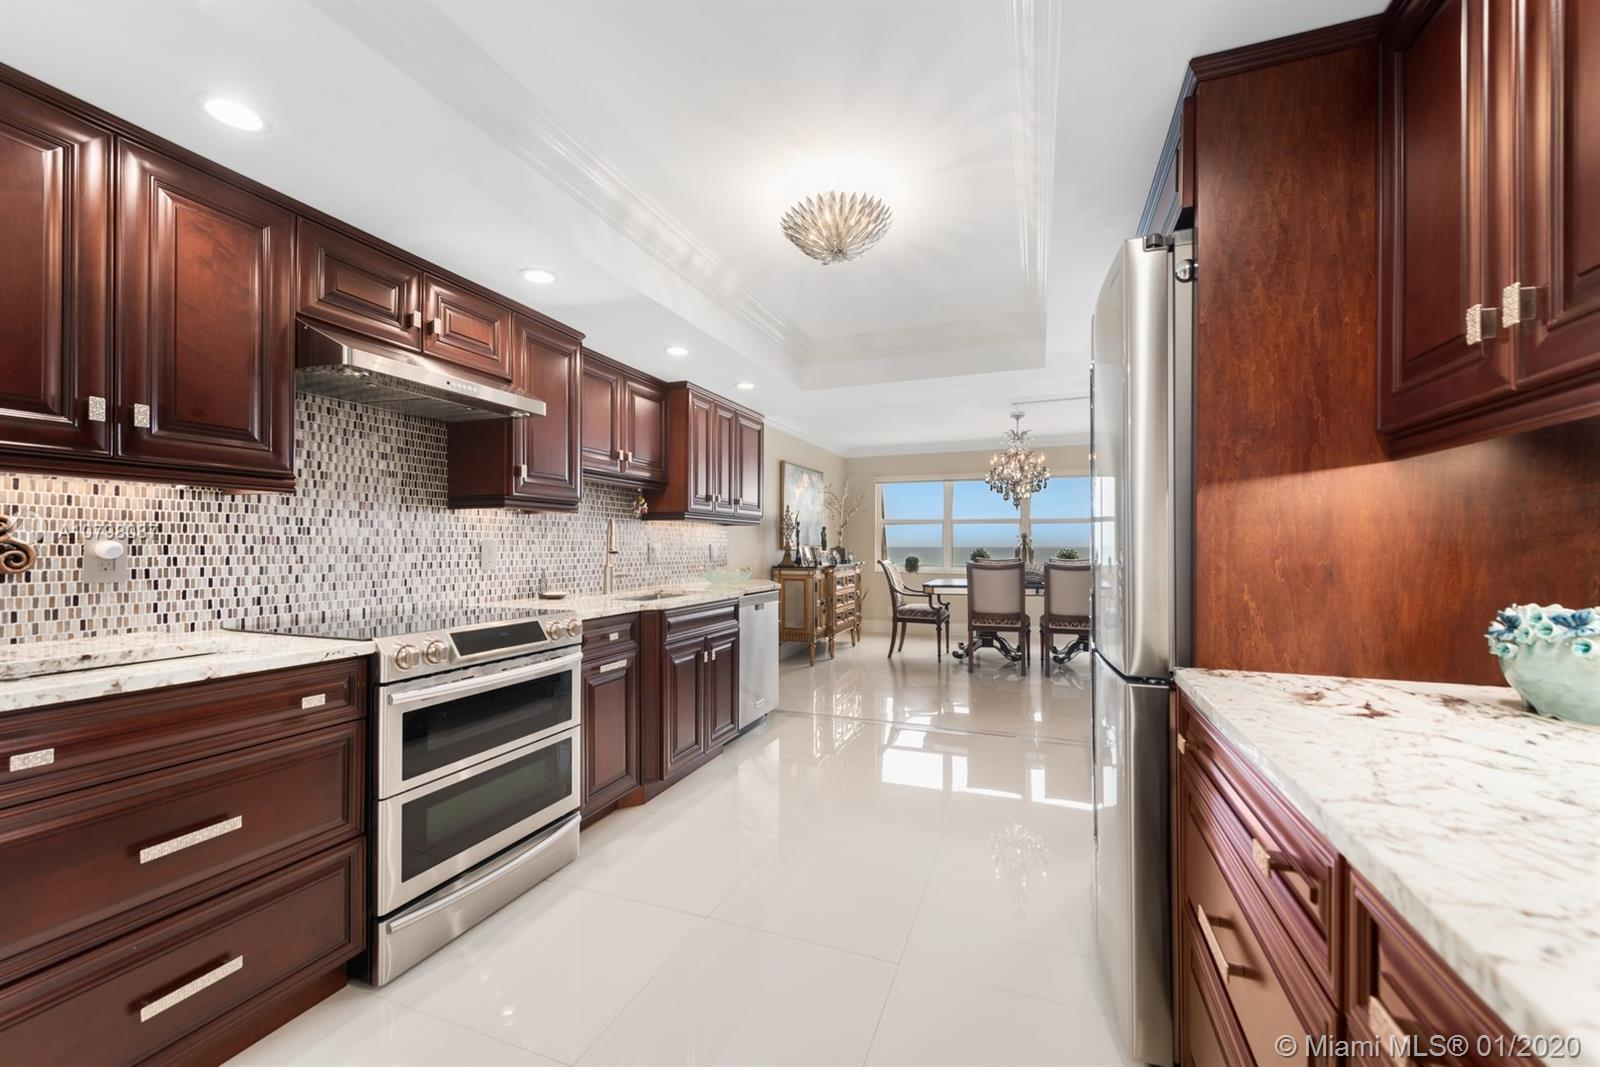 SPECTACULAR DIRECT OCEANFRONT VIEWS FROM THIS SPACIOUS 2 BEDROOM, 2.5 BATH CONDO. TILE FLOORS THROU